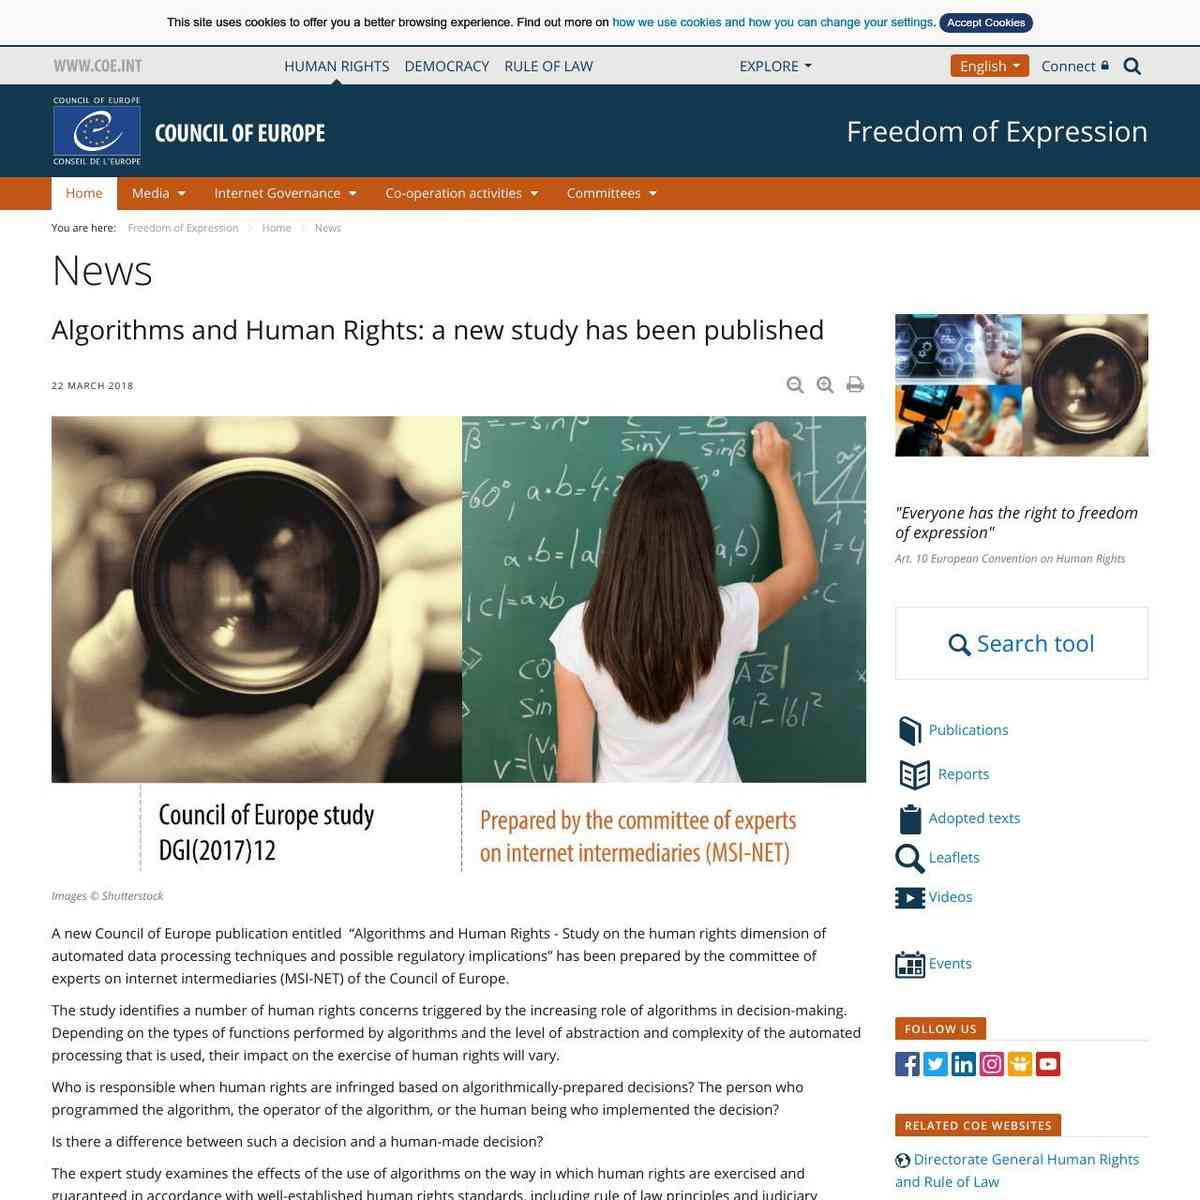 Algorithms and Human Rights: a new study has been published - News